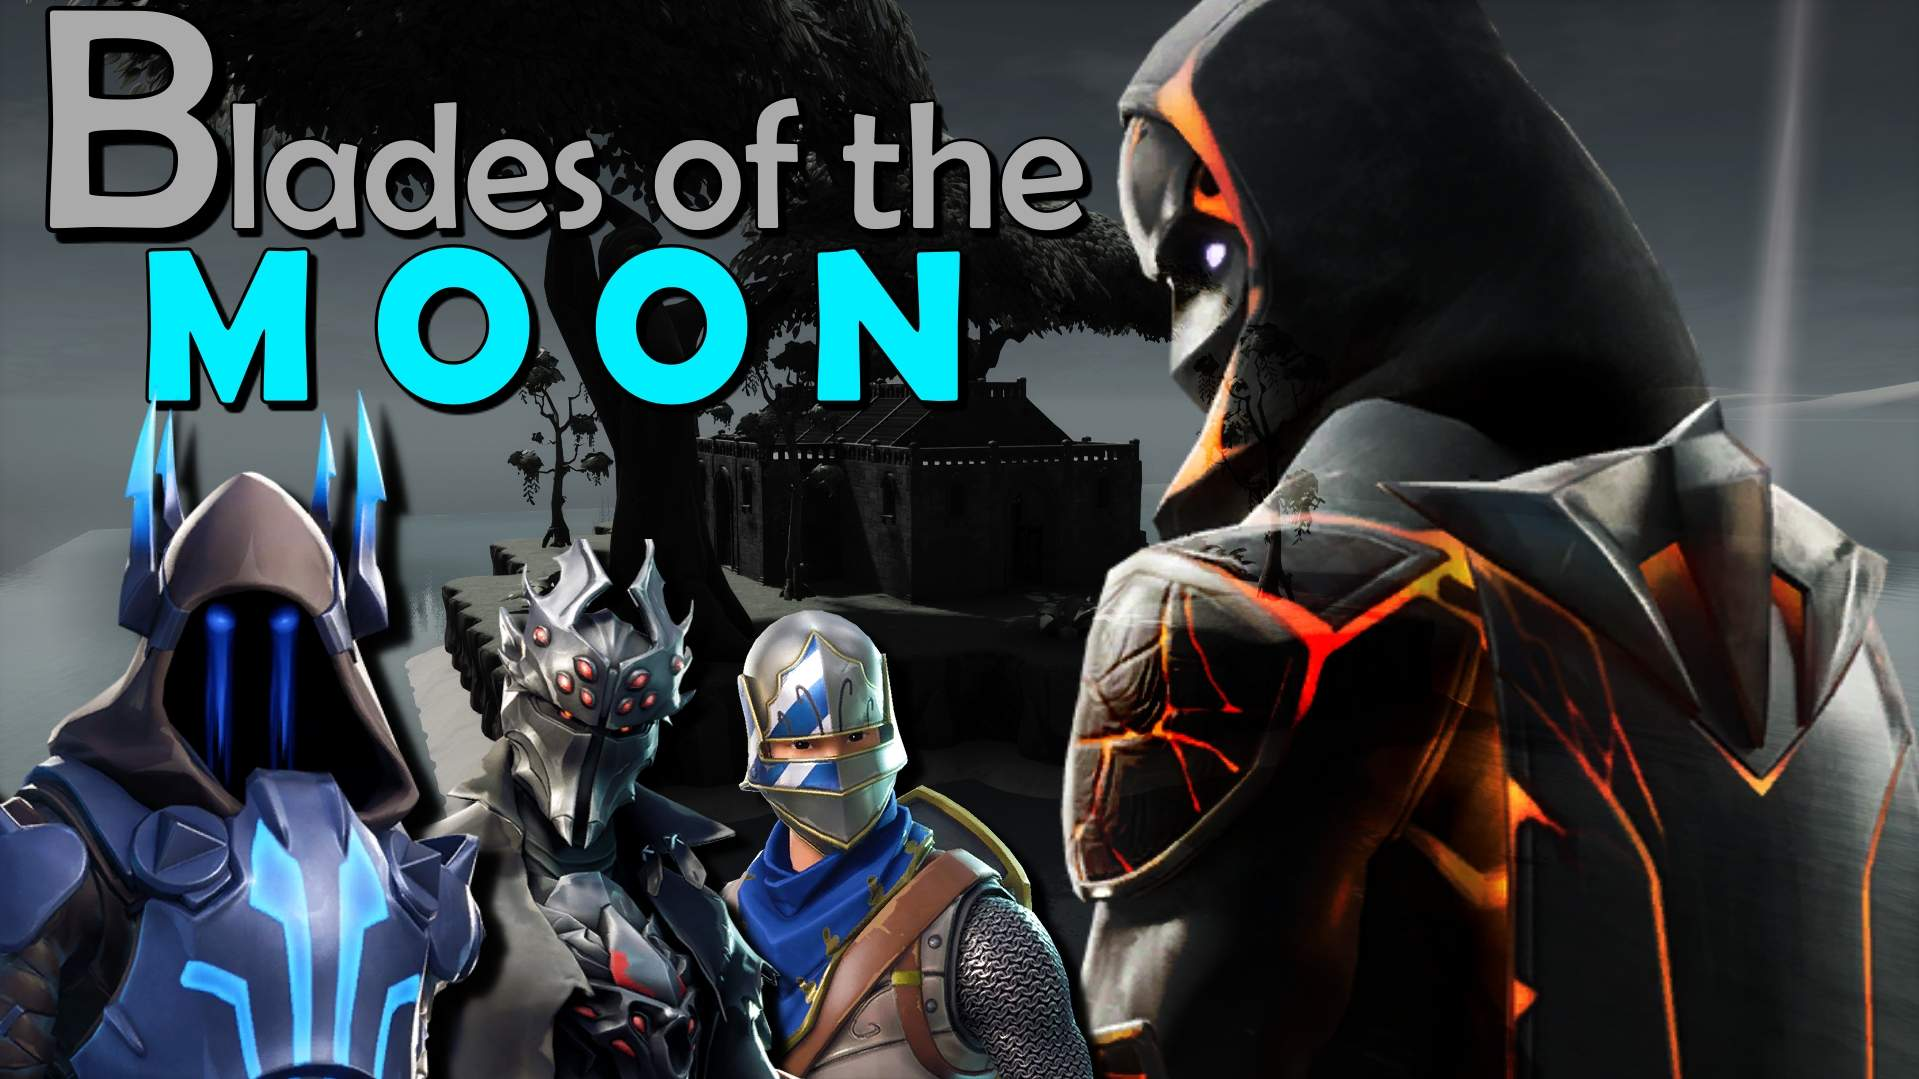 BLADES OF THE MOON